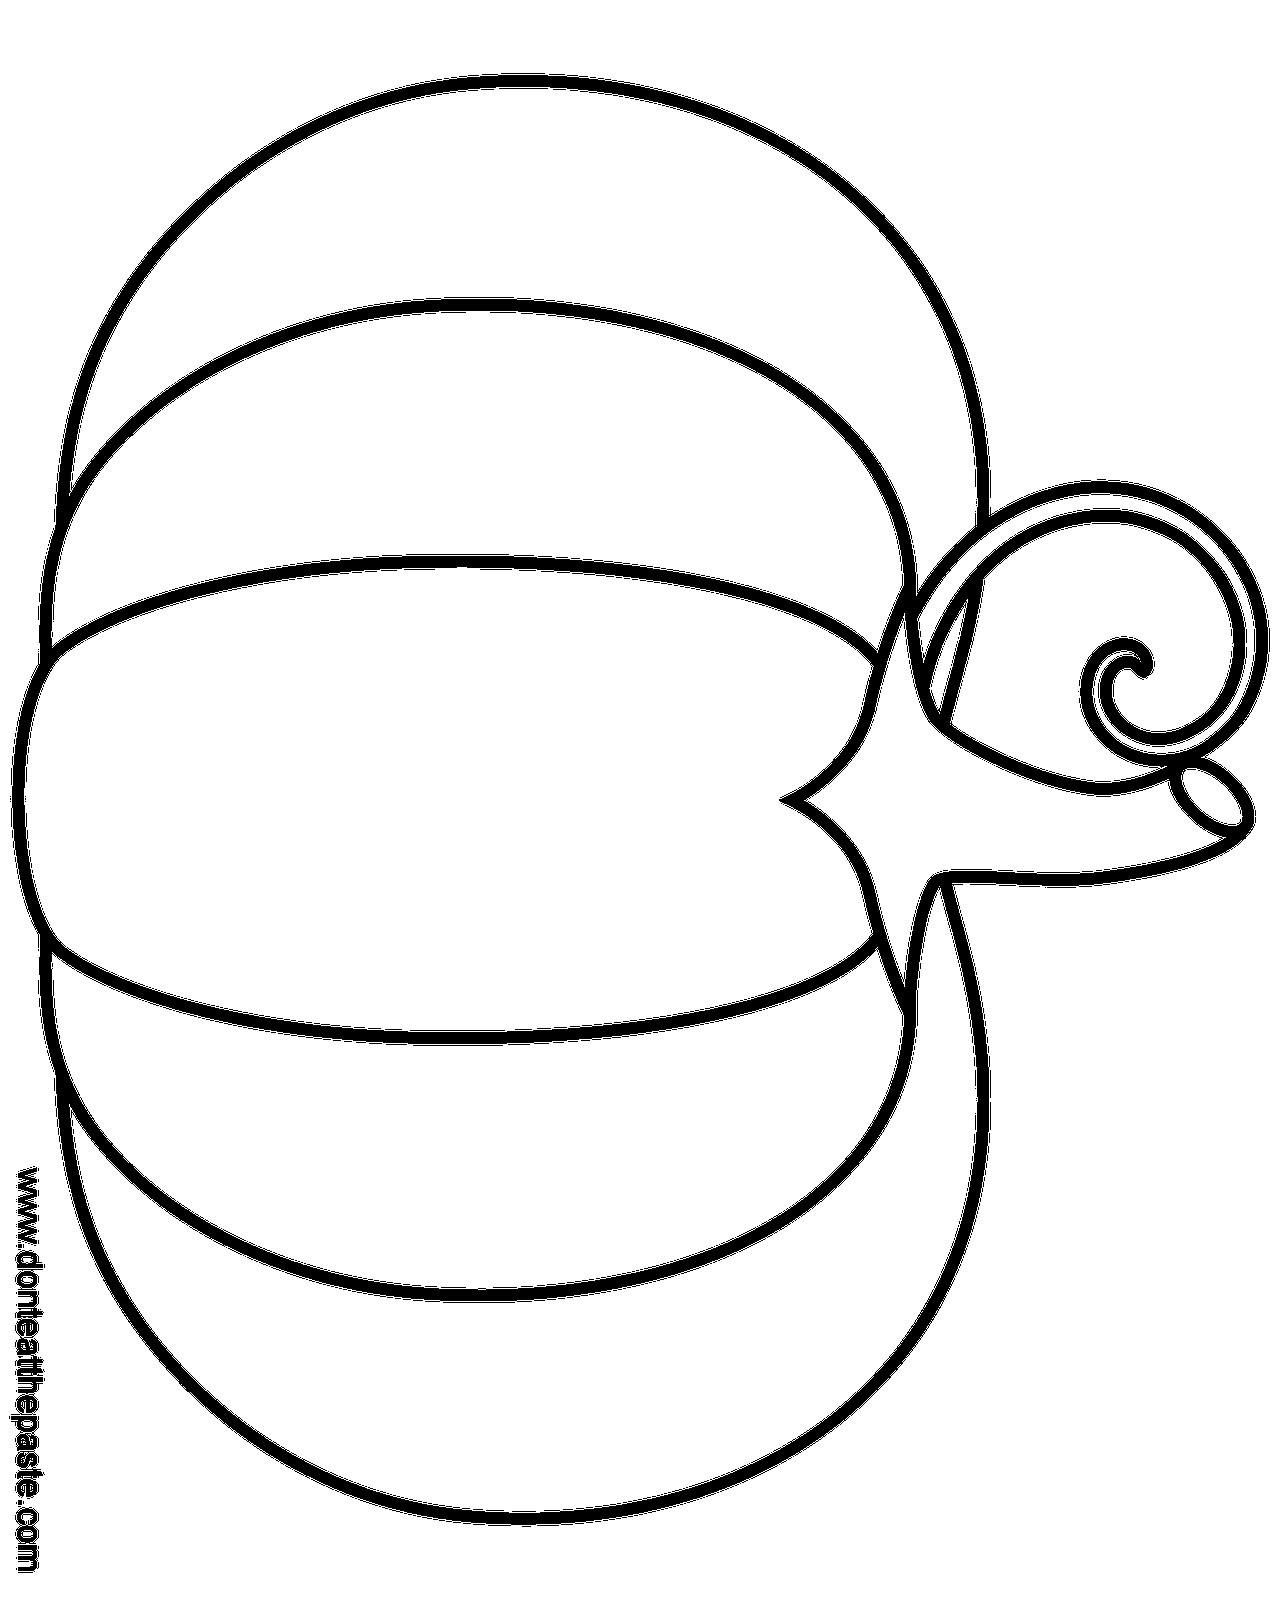 Pumpkin Coloring Pages At Getcolorings